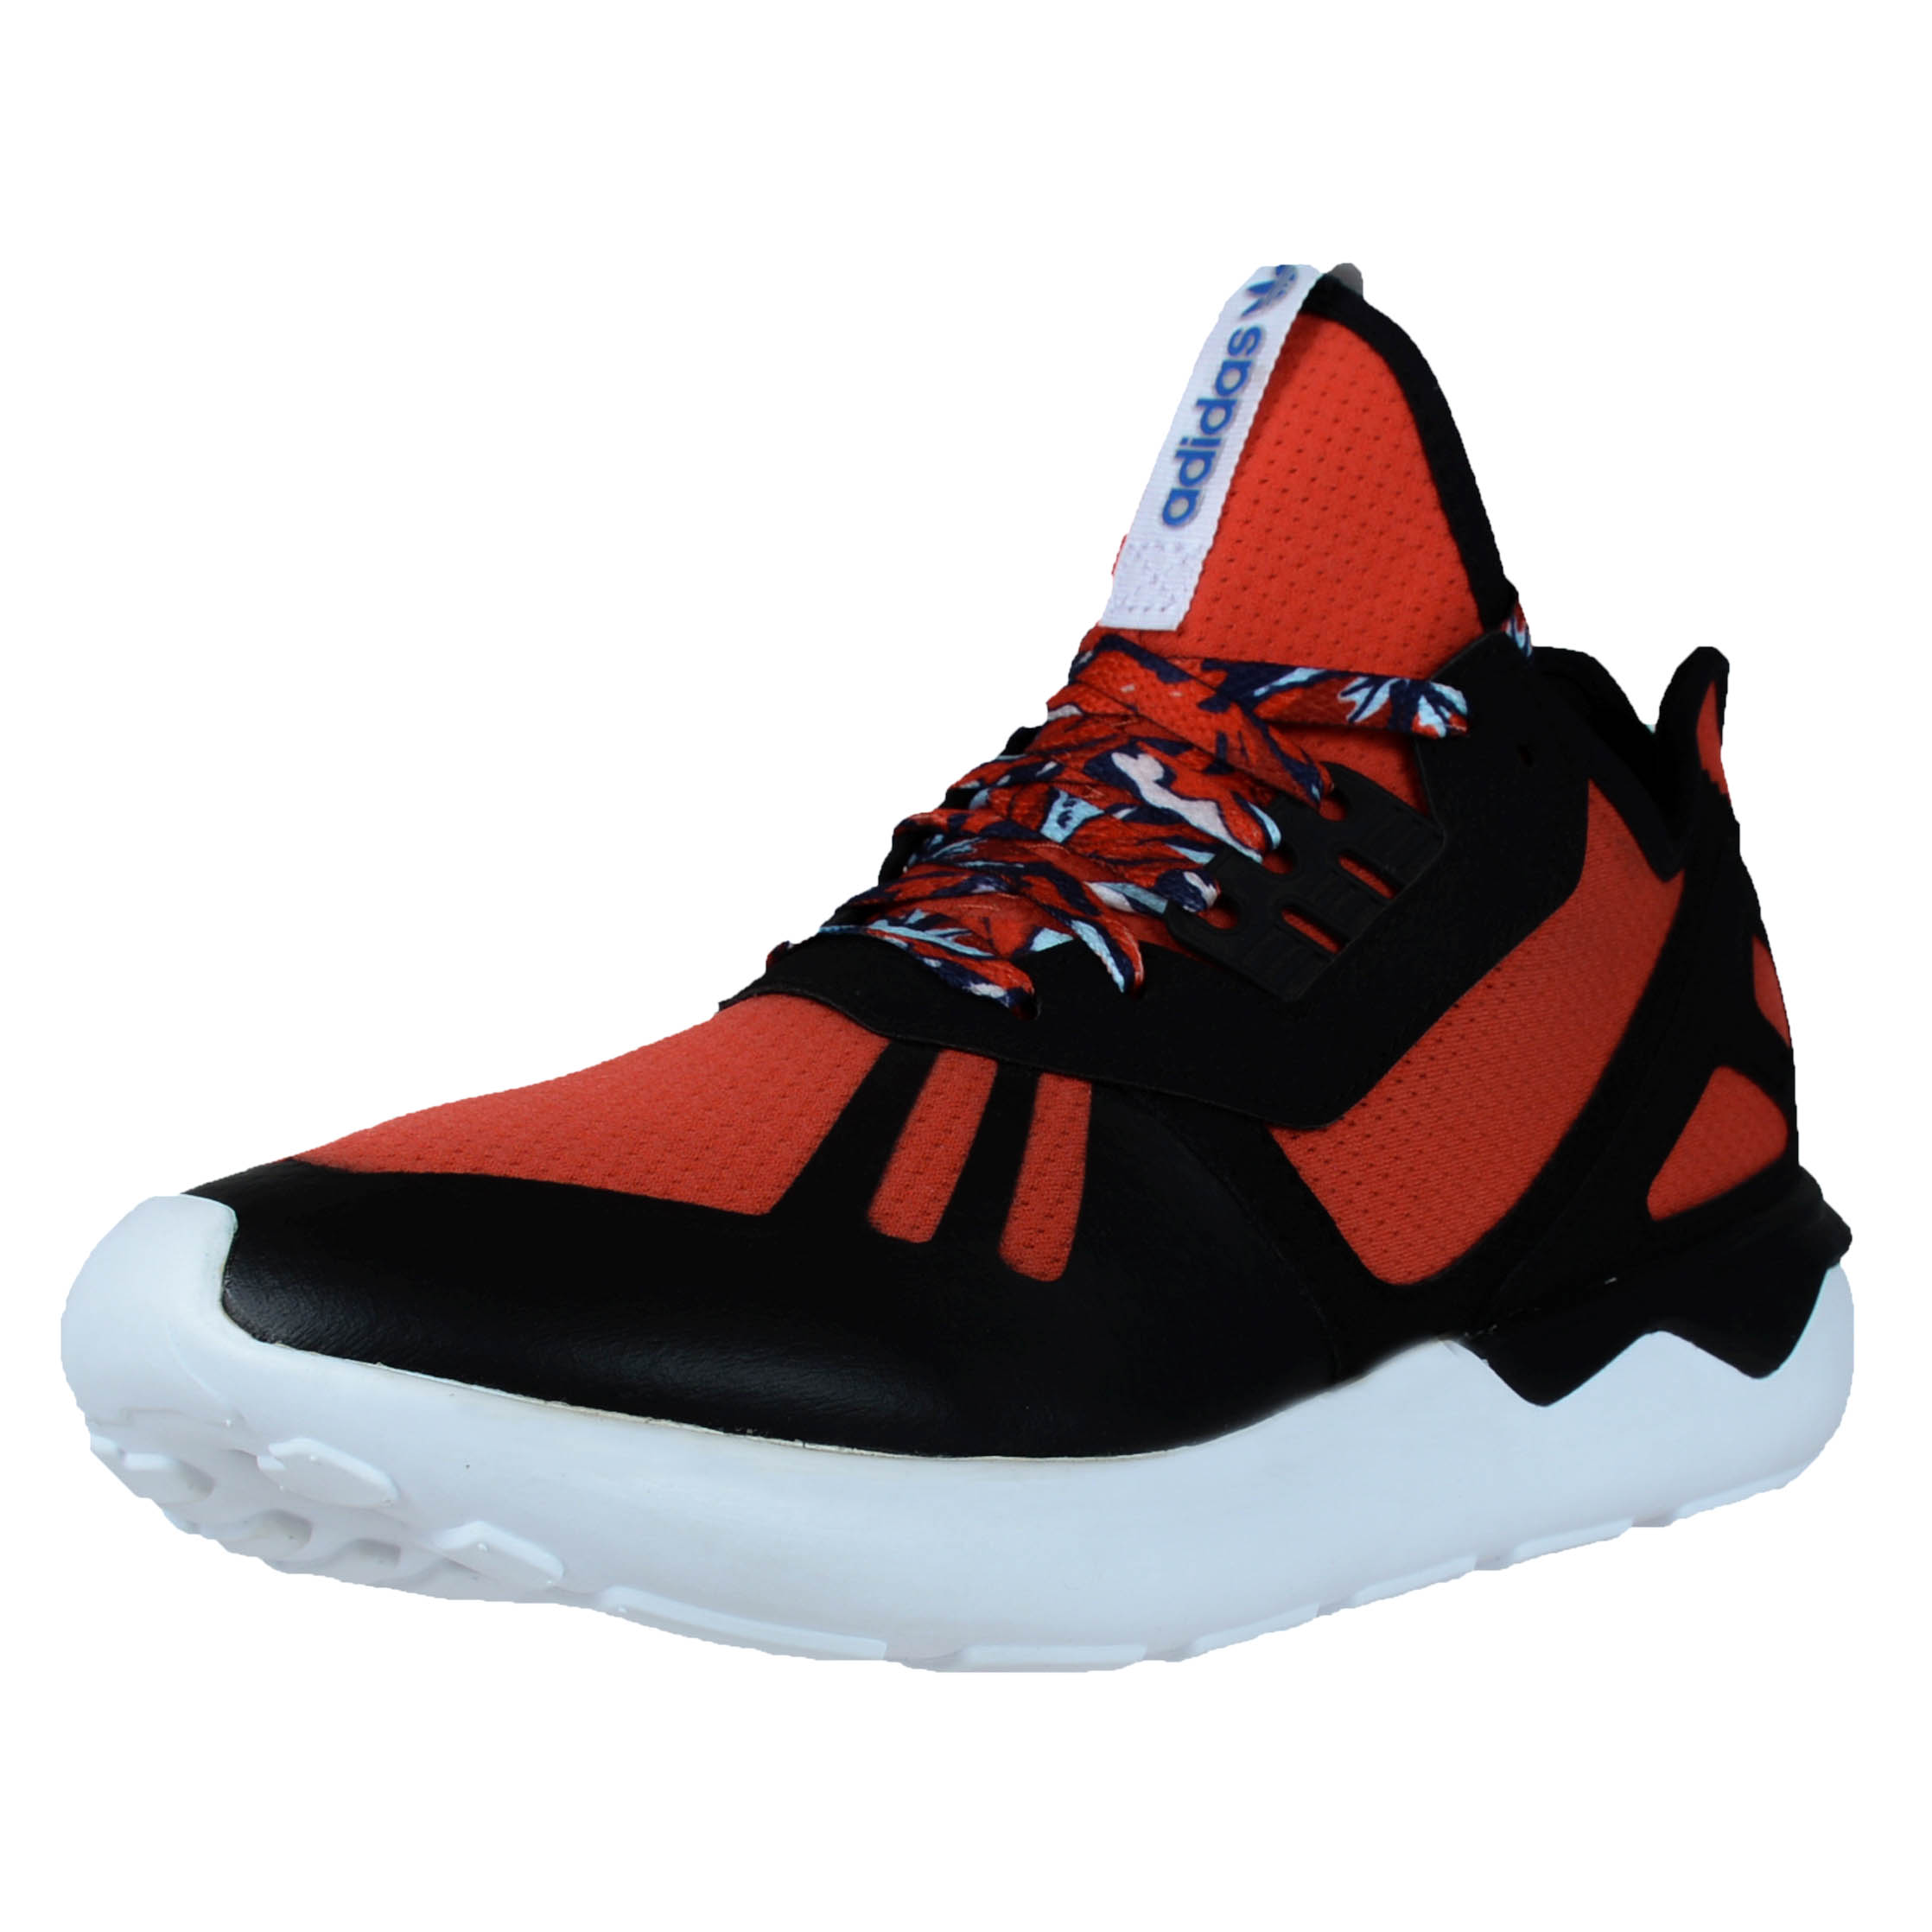 ADIDAS TUBULAR RUNNER RUNNING SHOES ACID WASH AMAZON RED BLACK B25952